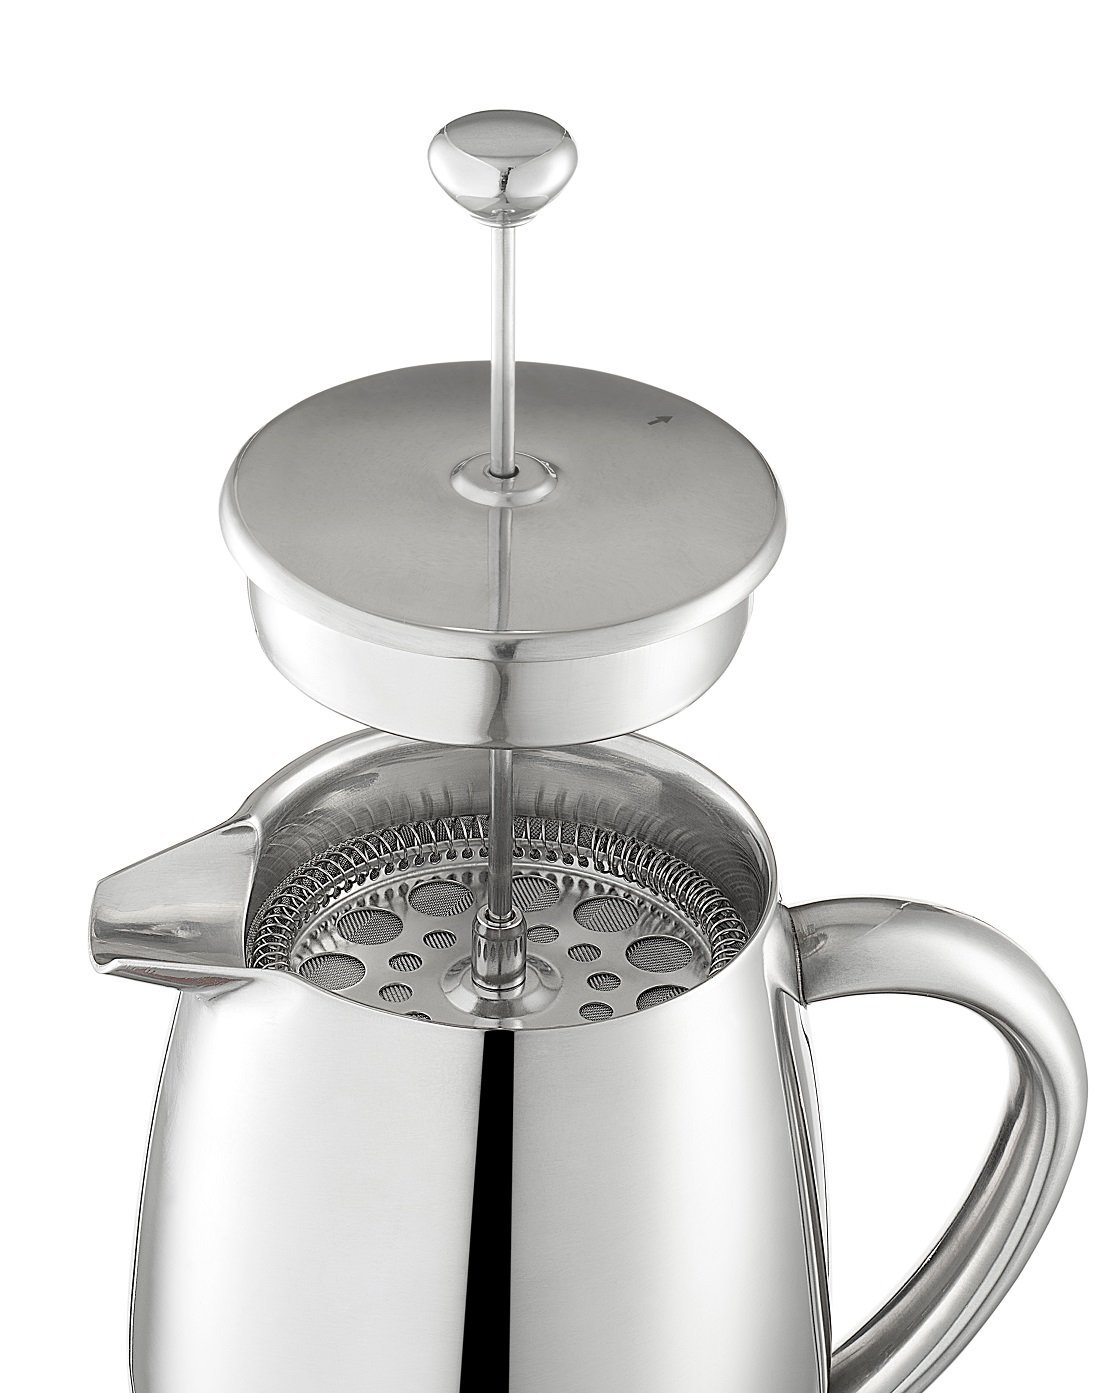 Best French Press Coffee Stainless Steel French Press Amazon